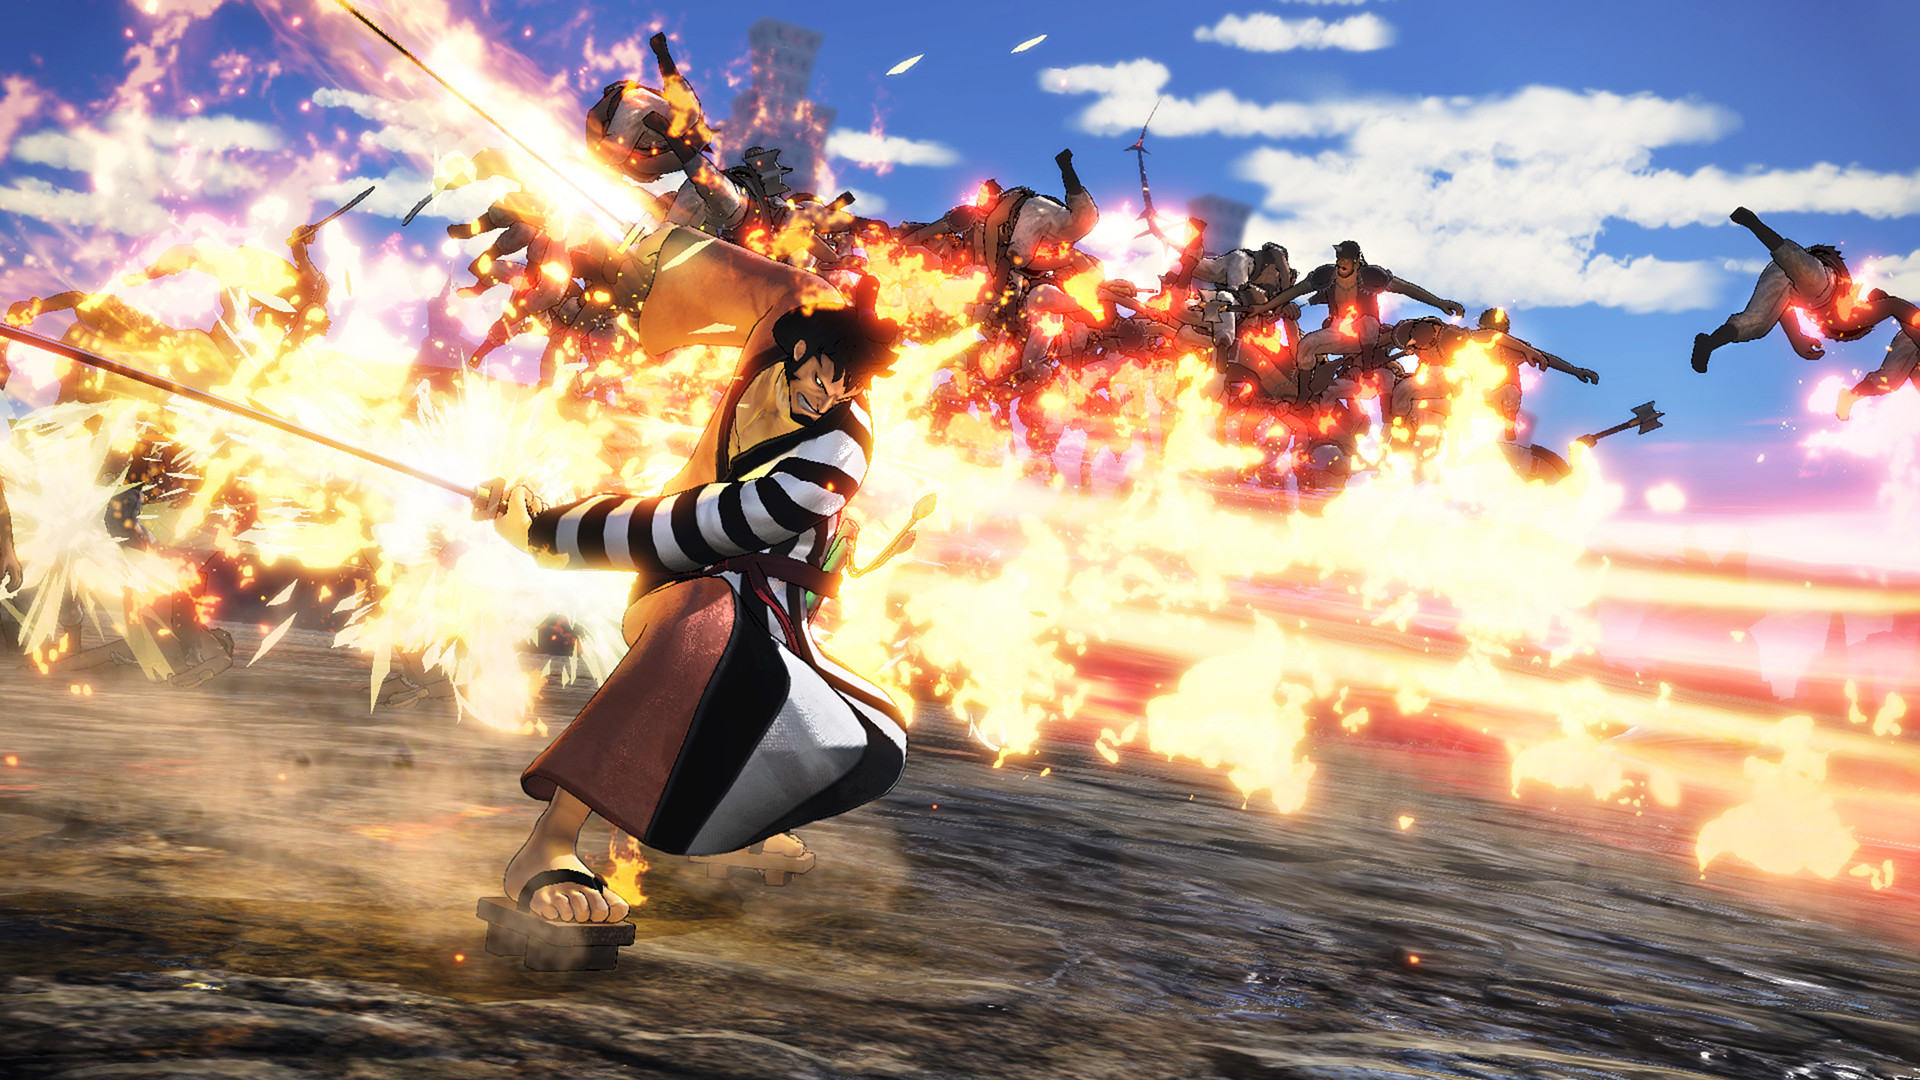 Download One Piece Pirate Warriors 4 Land Of Wano-P2P In PC [ Torrent ]